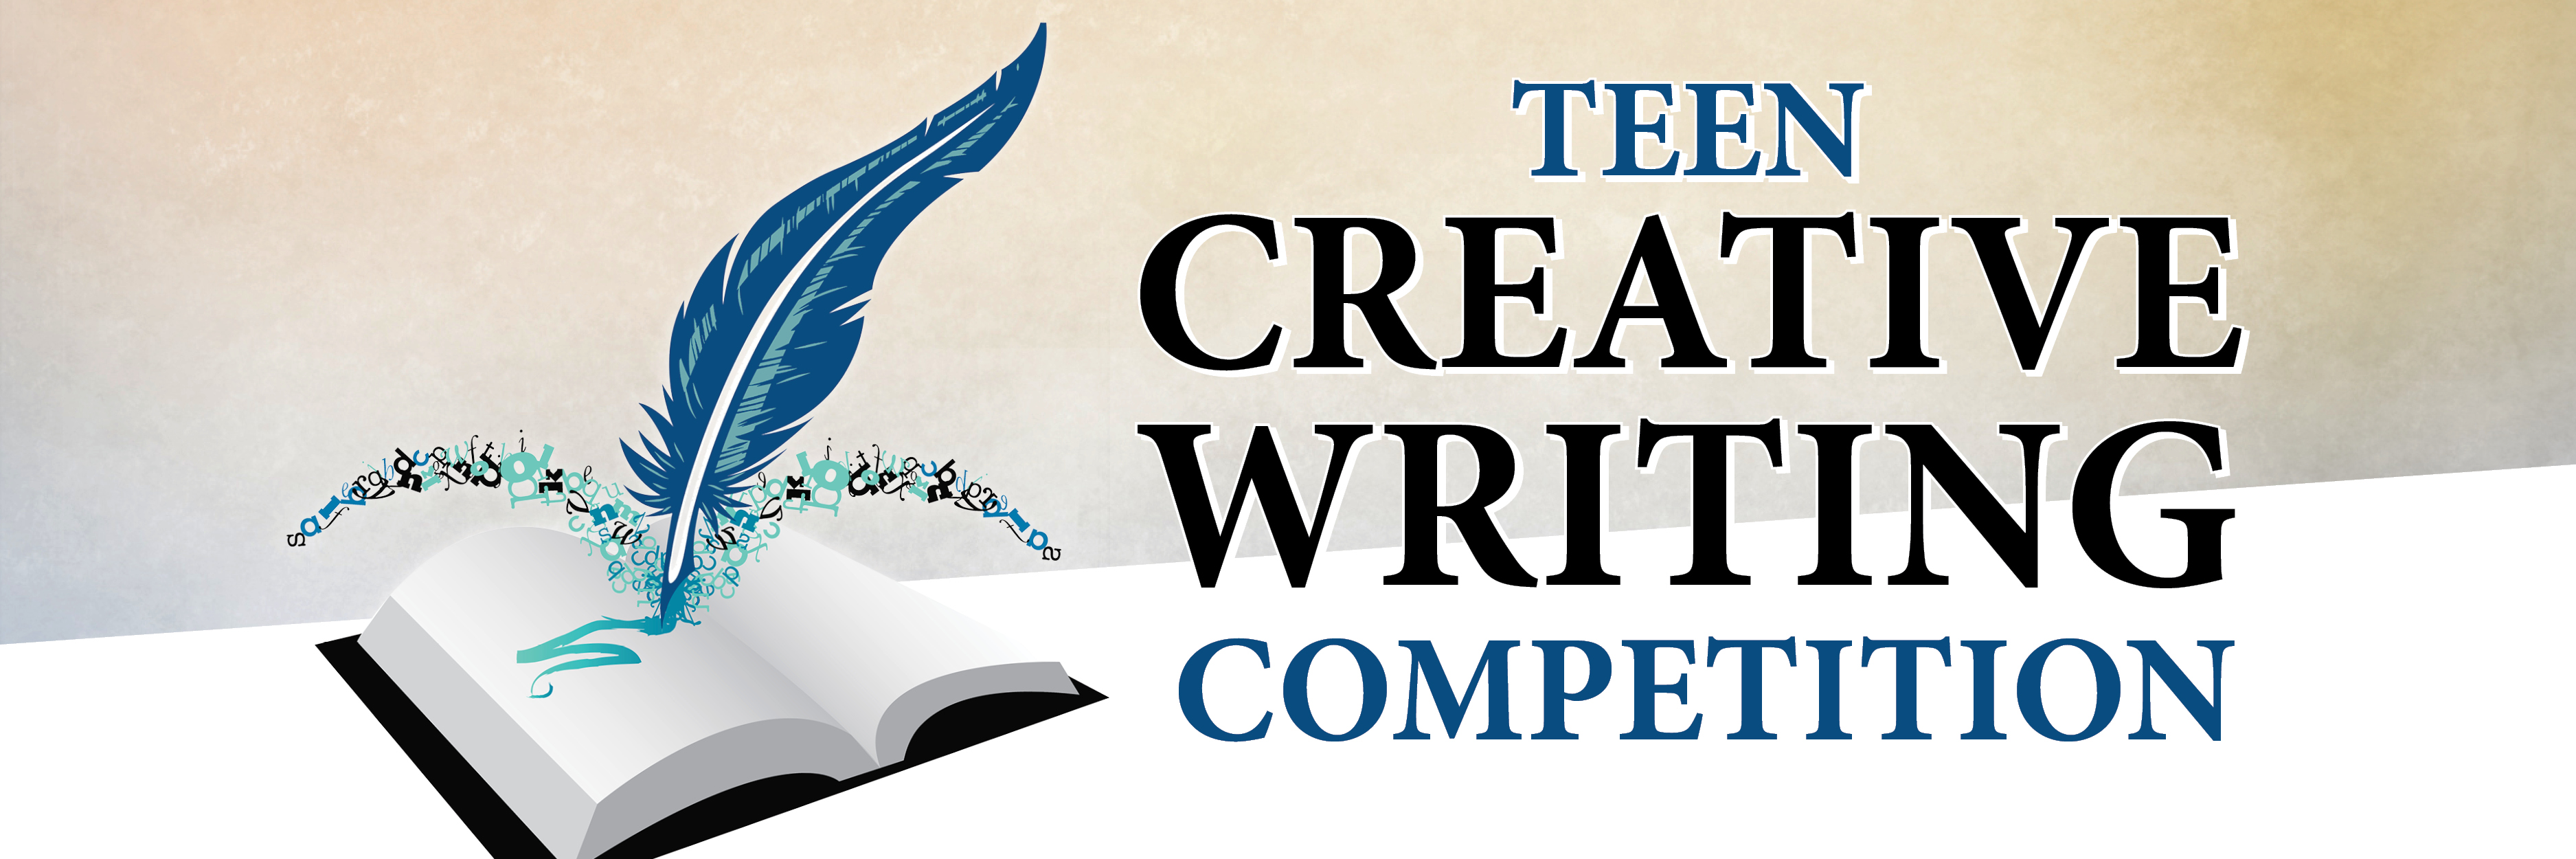 019 Teen Scene Farmington Community Library Tcw Banner Essay Writing Contest Rubrics For Nutrition Month Criteria Tips Objectives Philippines Mechanics Guidelines Incredible International Competitions High School Students Rules By Essayhub Full